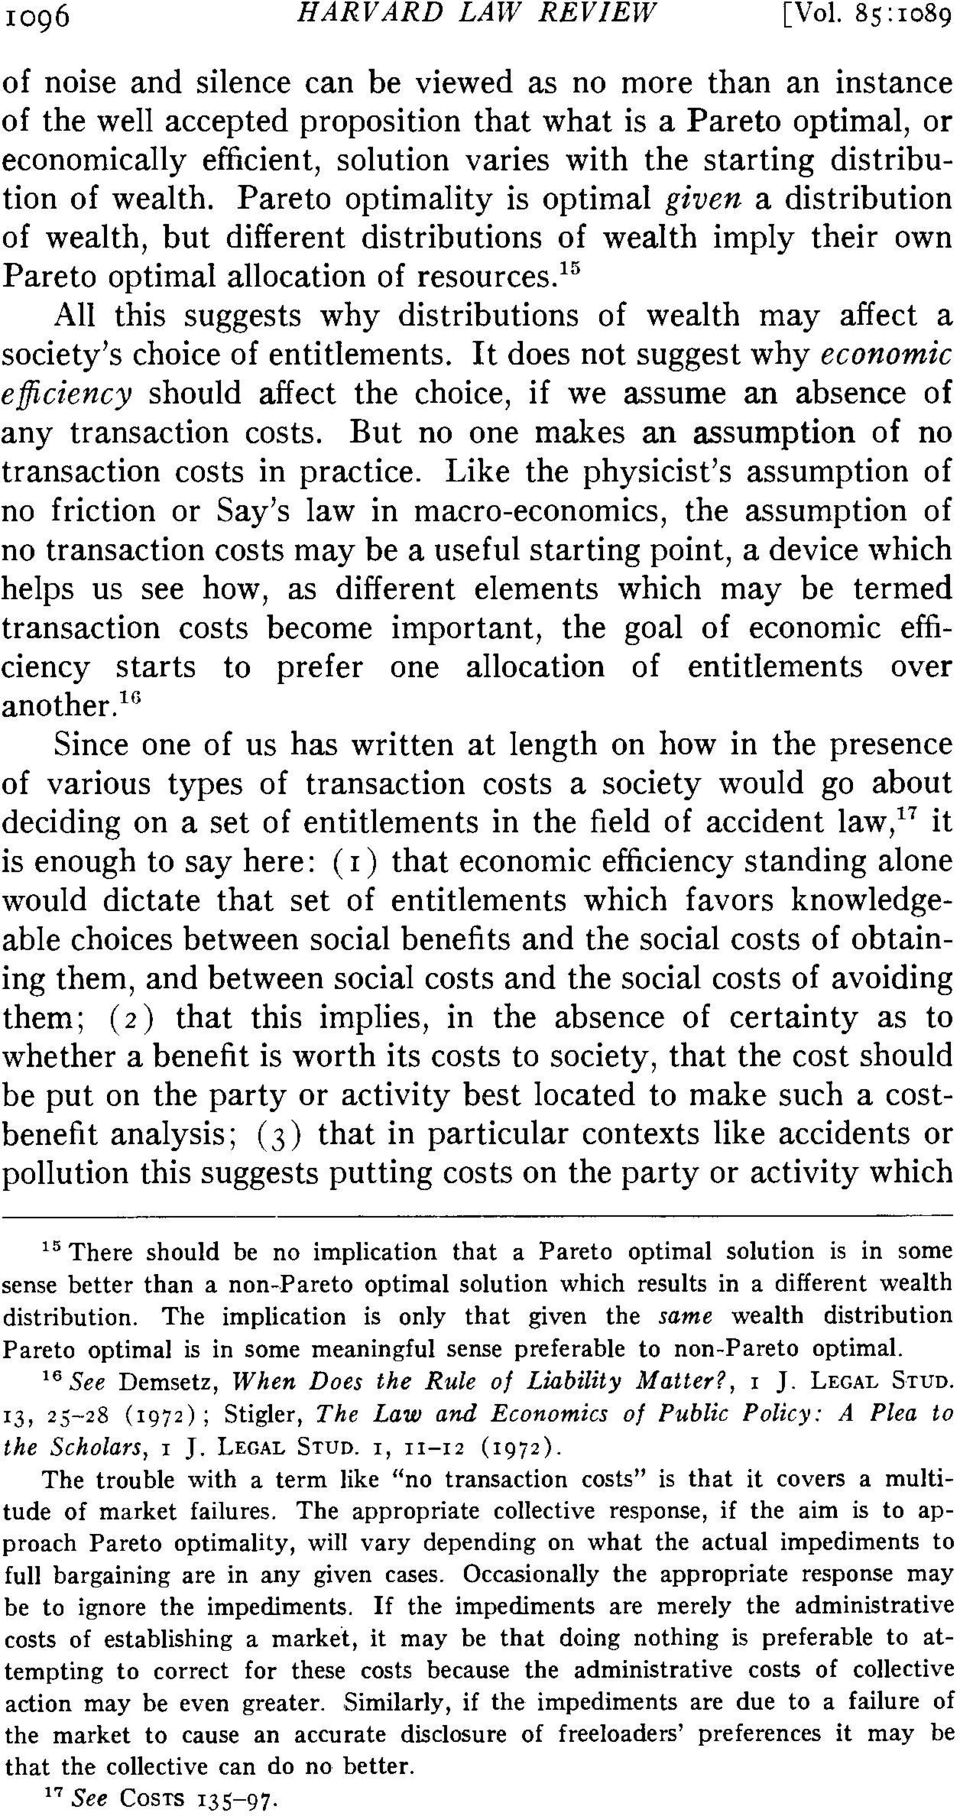 distribution of wealth. Pareto optimality is optimal given a distribution of wealth, but different distributions of wealth imply their own Pareto optimal allocation of resources.